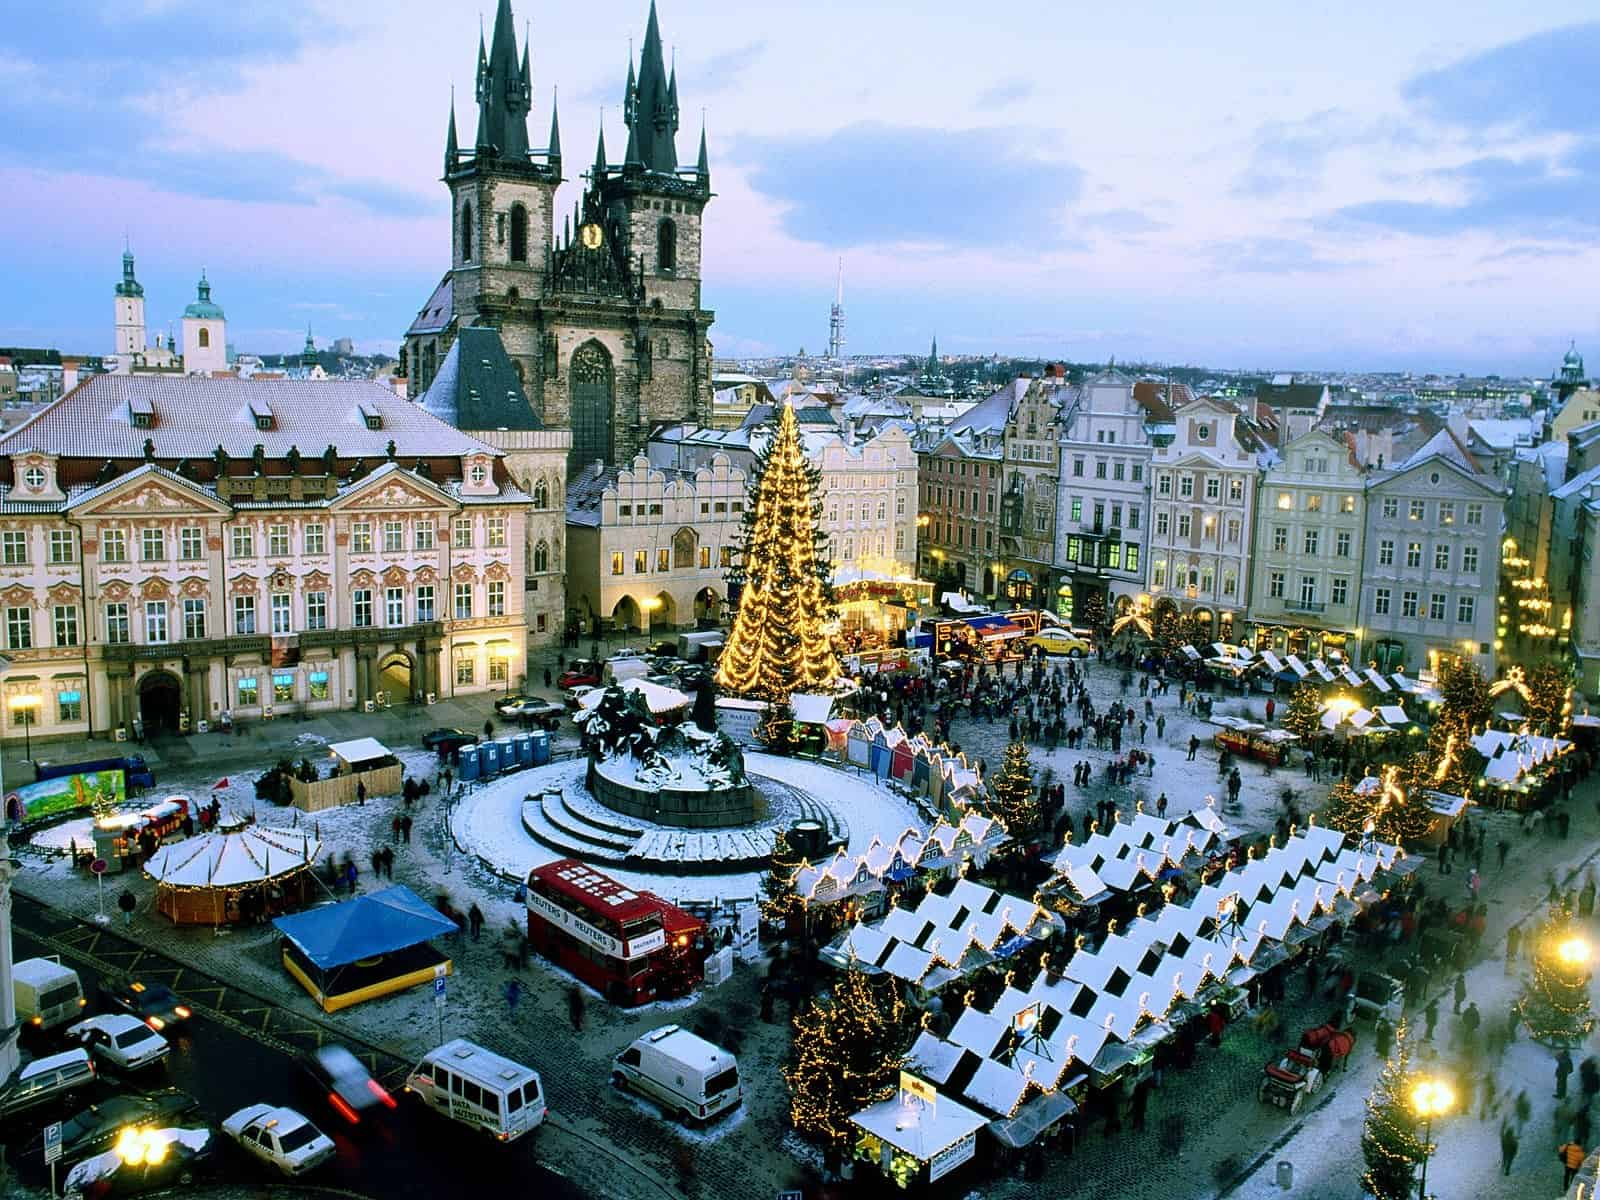 Winter market on the Old Town Square